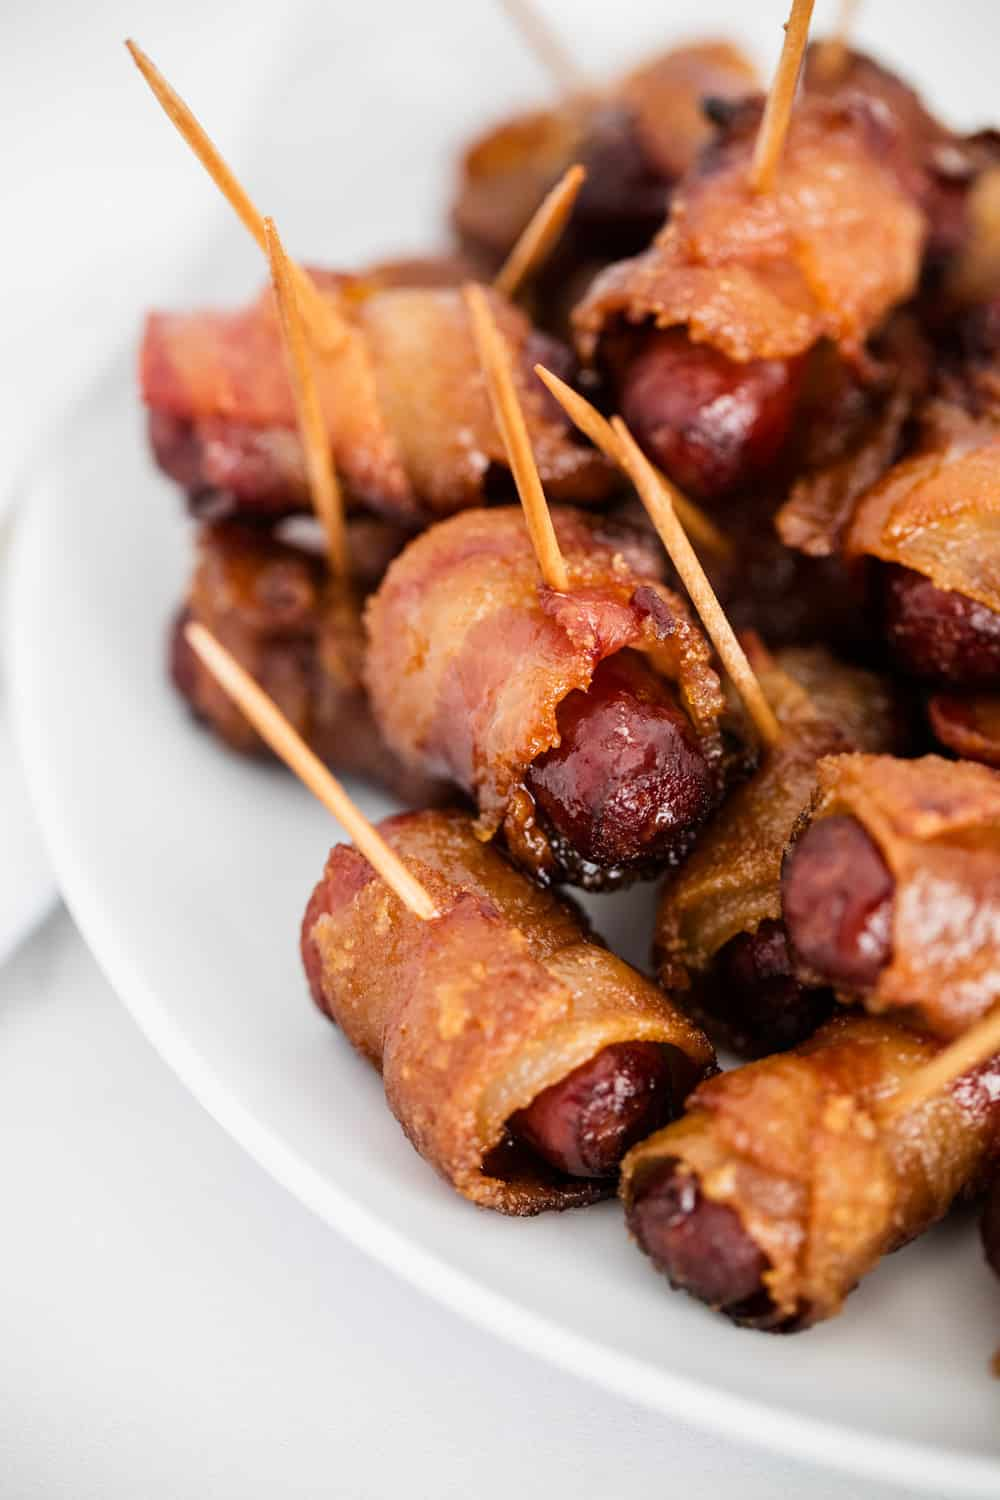 bacon wrapped smokies on white plate